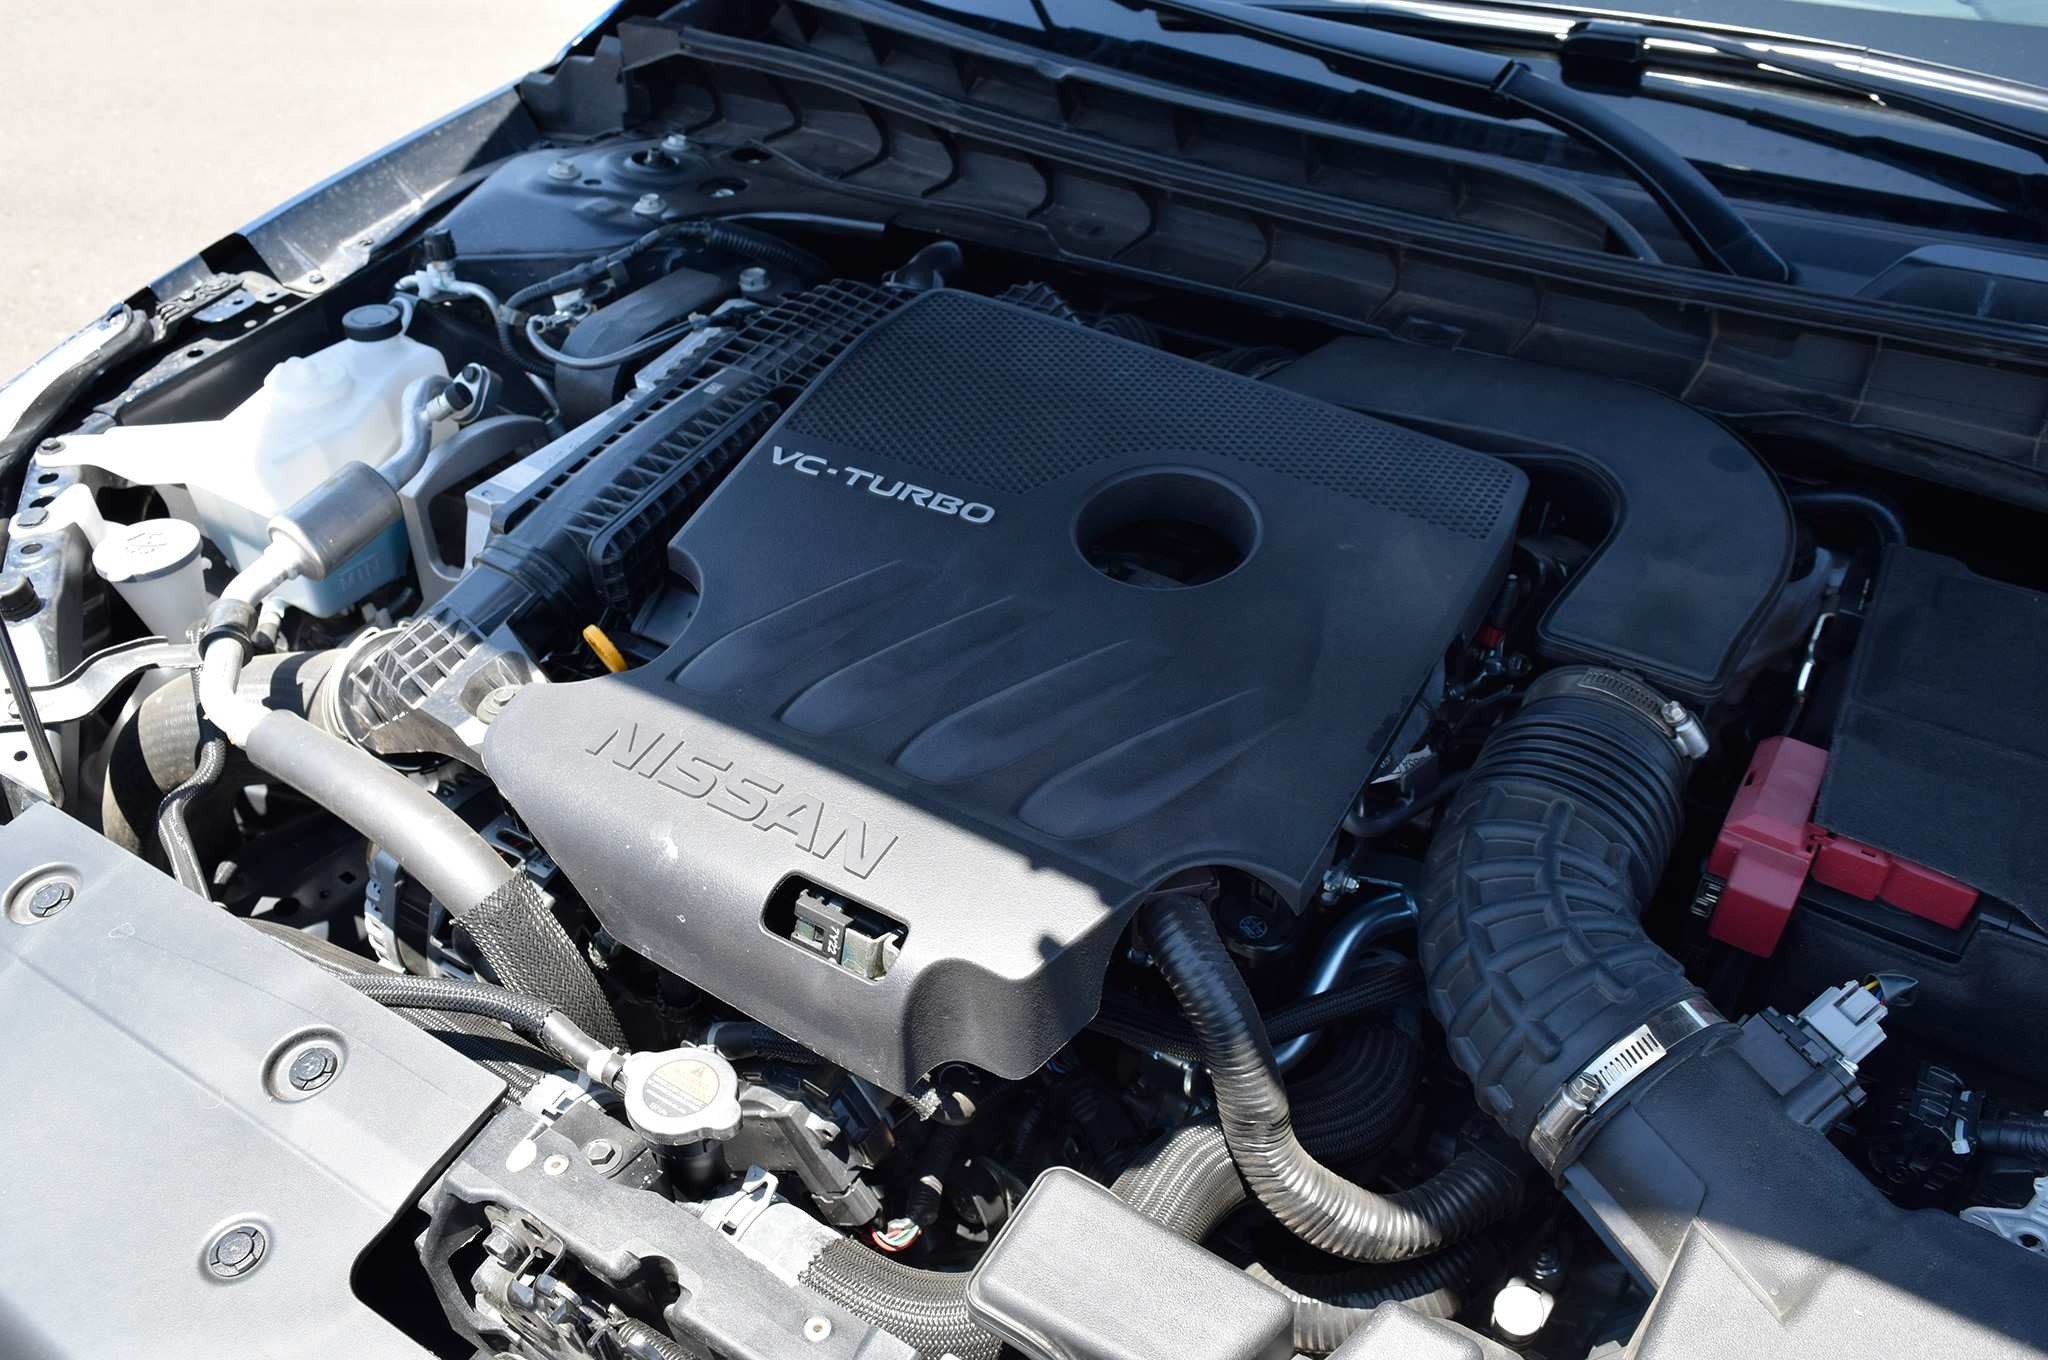 64 New 2019 Nissan Altima Engine History